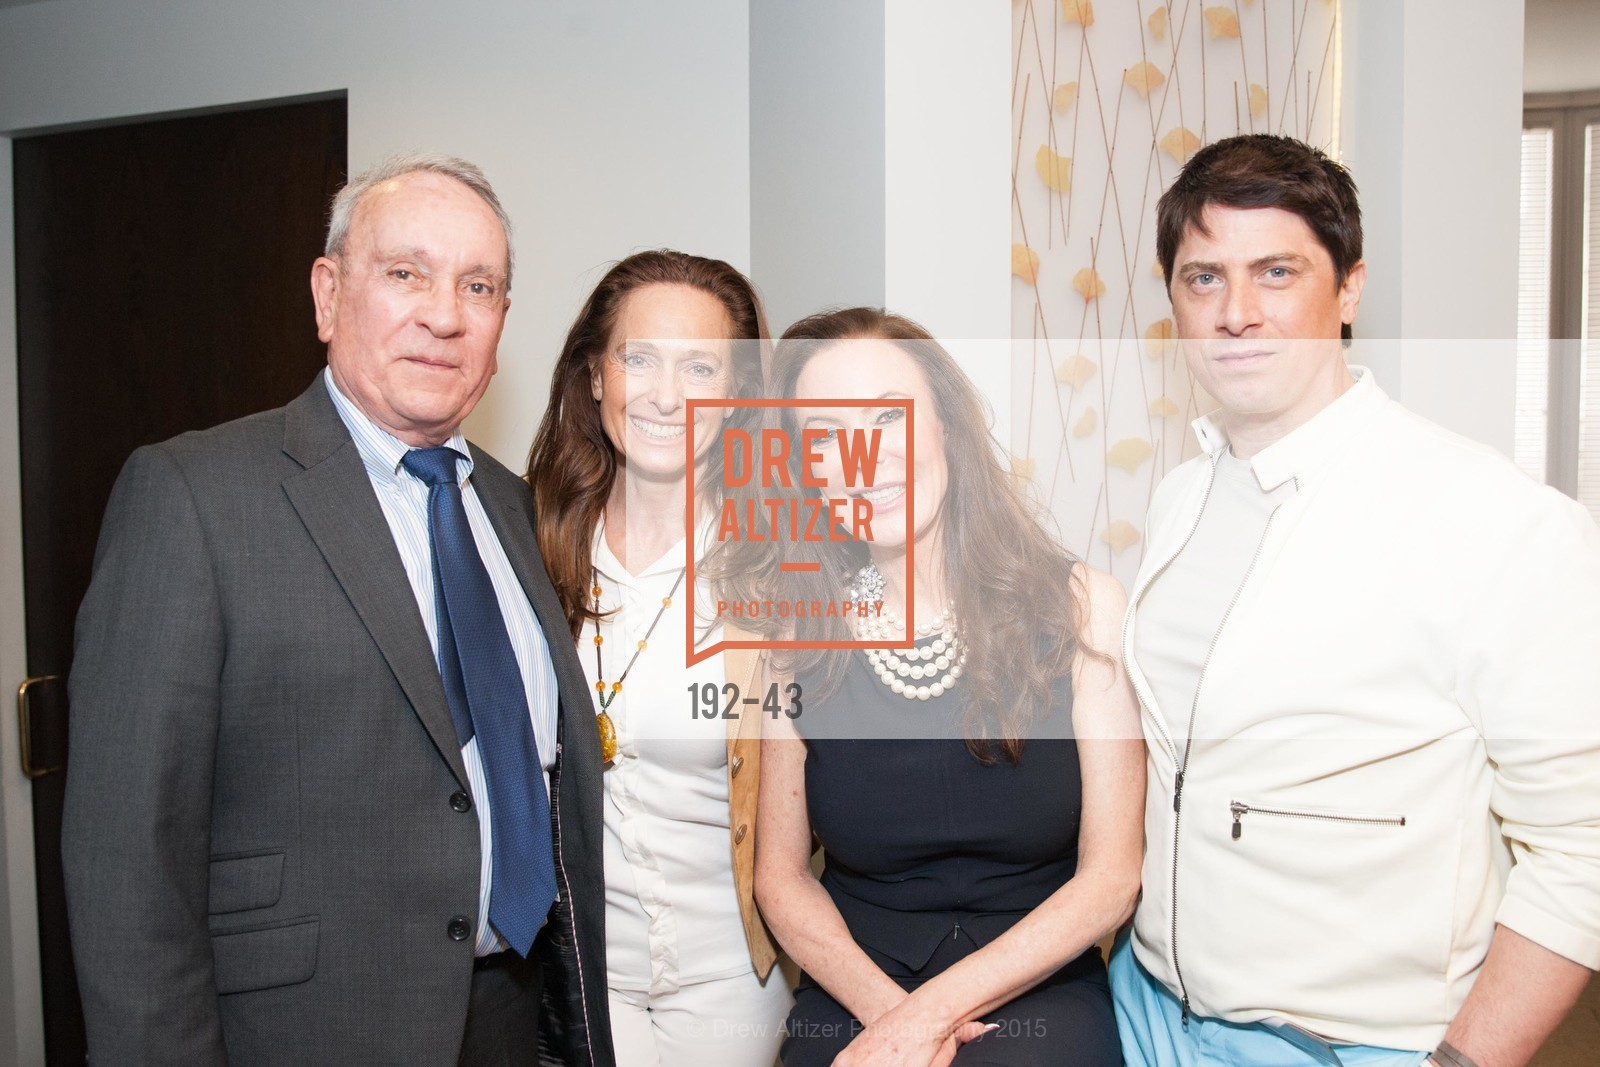 Patrick Bitter, Elisabeth Thieriot, Margaret Mitchell, EPI CENTER MedSpa Anniversary and Launch of REPLETE, Epi Center MedSpa, April 21st, 2015,Drew Altizer, Drew Altizer Photography, full-service agency, private events, San Francisco photographer, photographer california